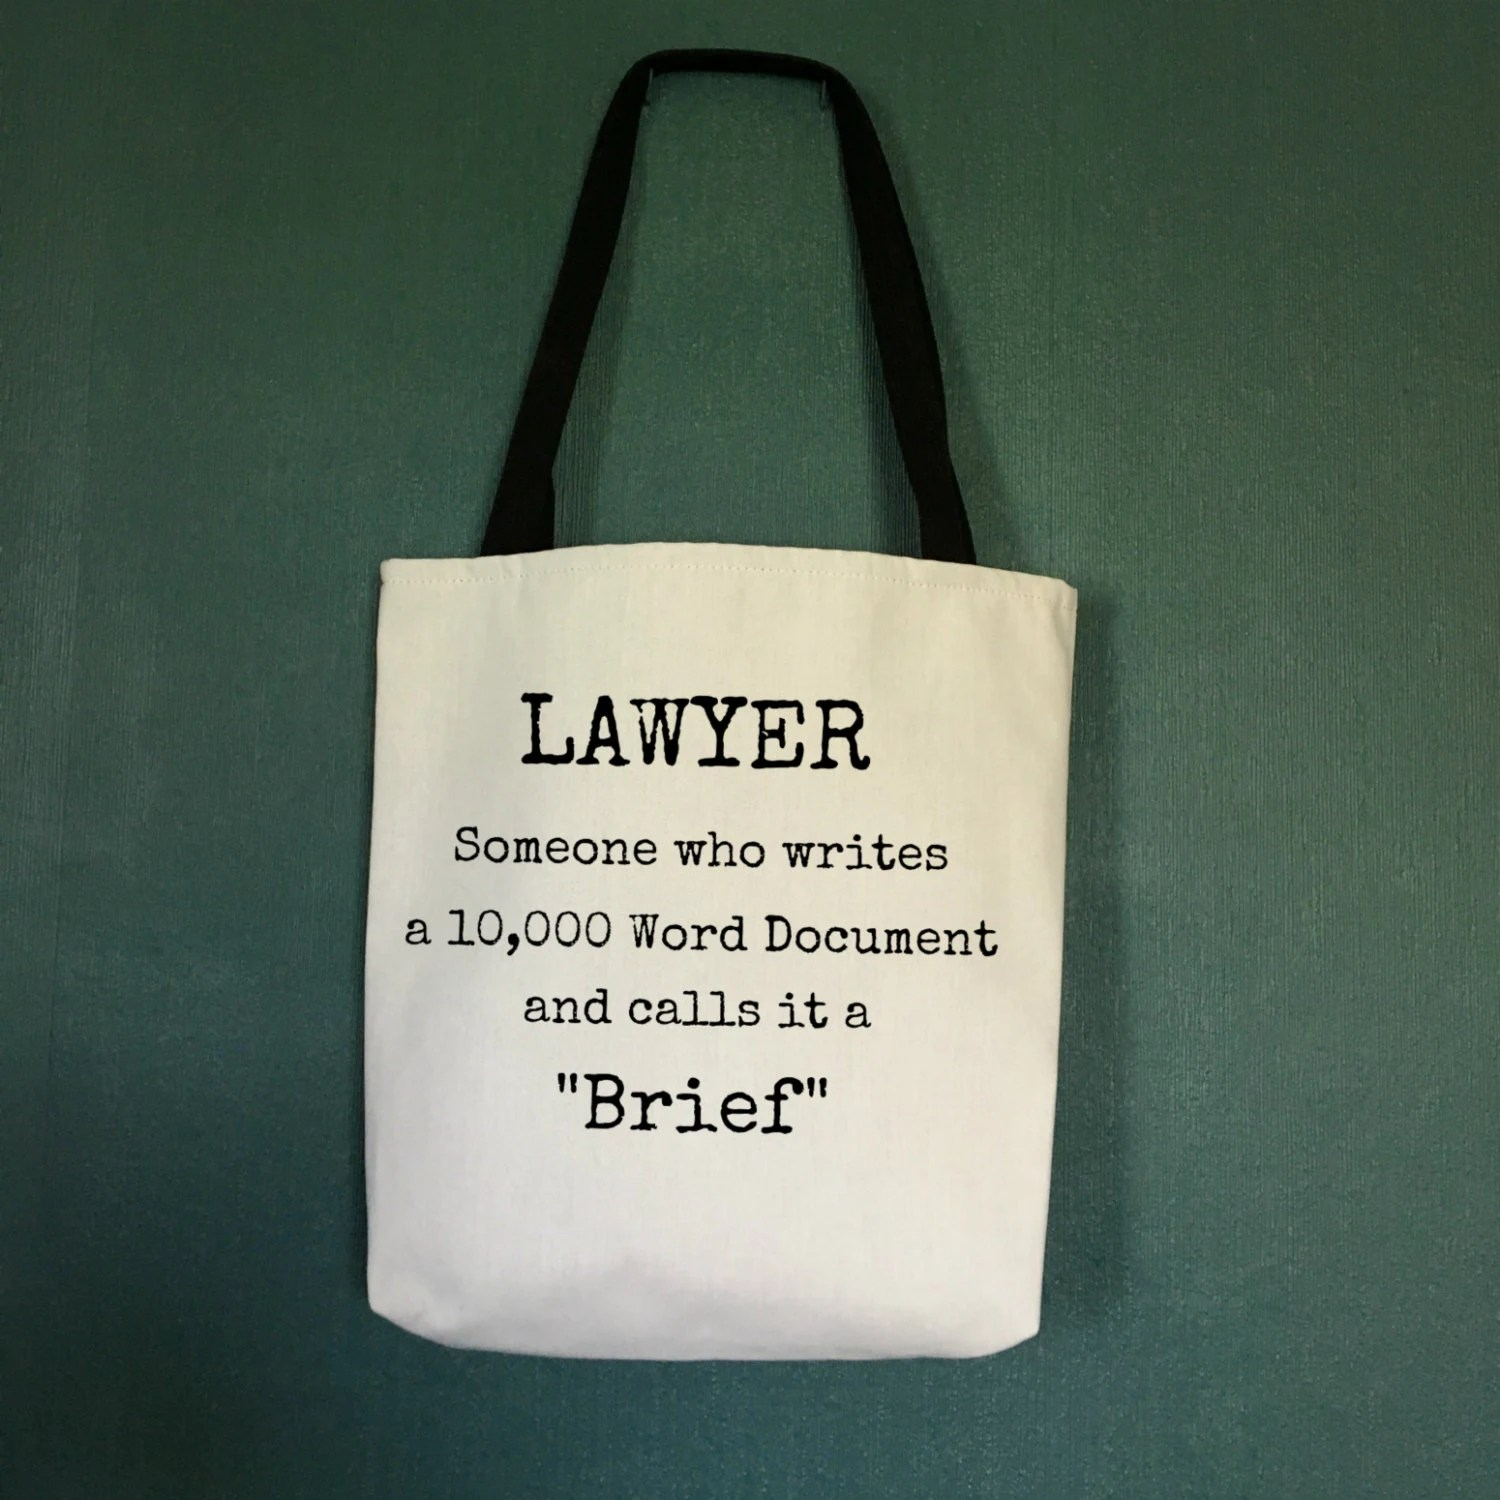 Hilarious Law School Graduation Tote Baglawyer Someone Who Writes A Attorney Gifts Lawyer Ny Gifts Lawyer Ny Gifts Law School Graduation Gift gifts Unique Graduation Gifts